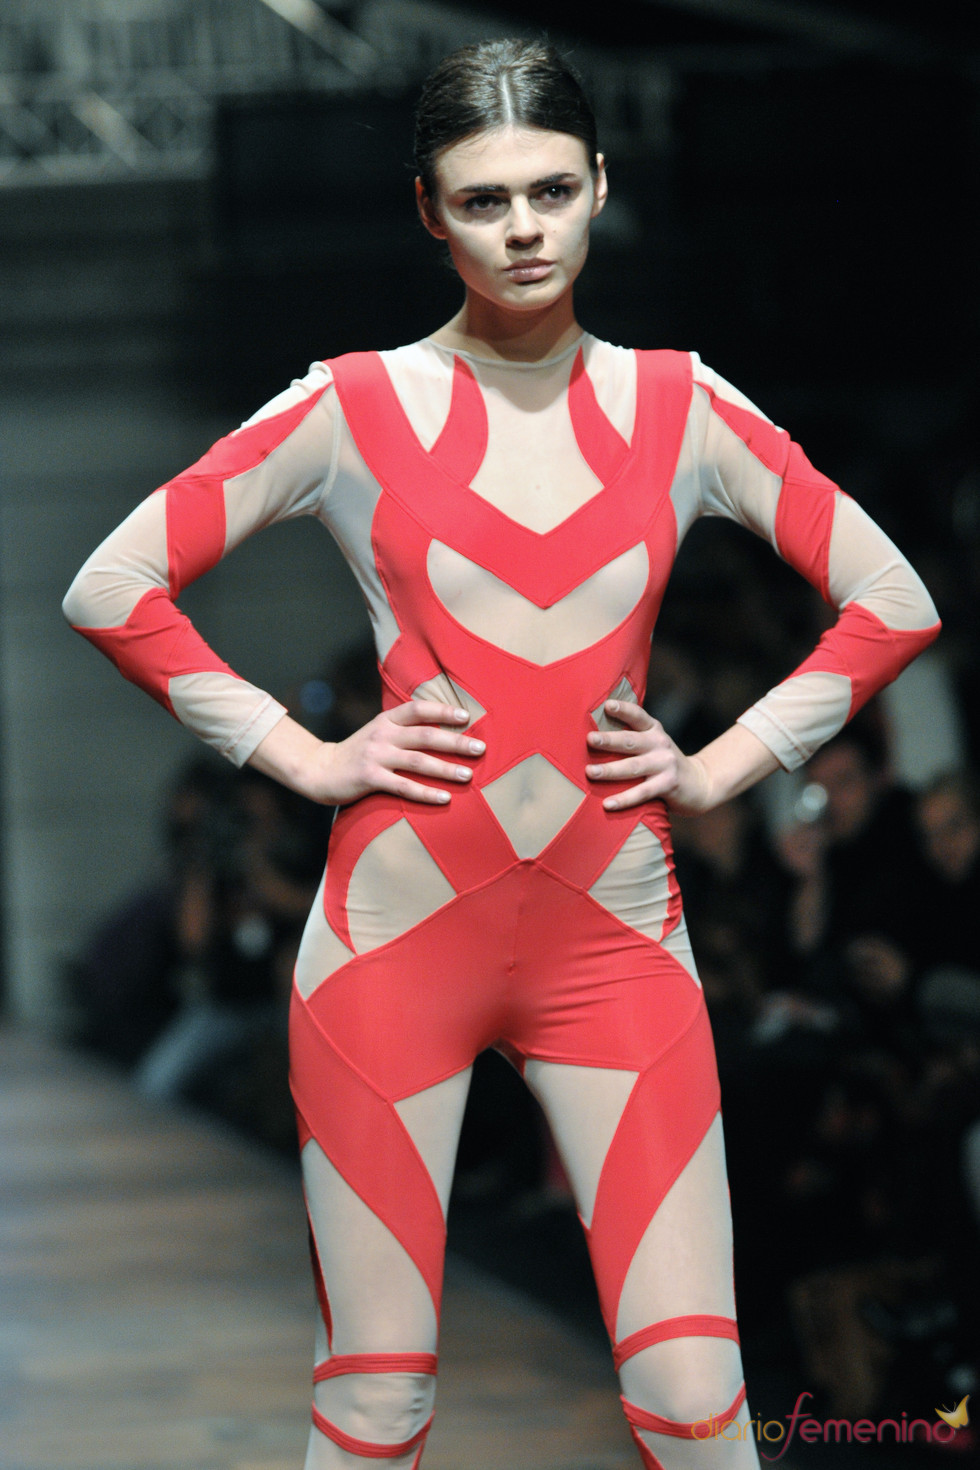 Agnieszka Maciejak en la Poland Fashion Week